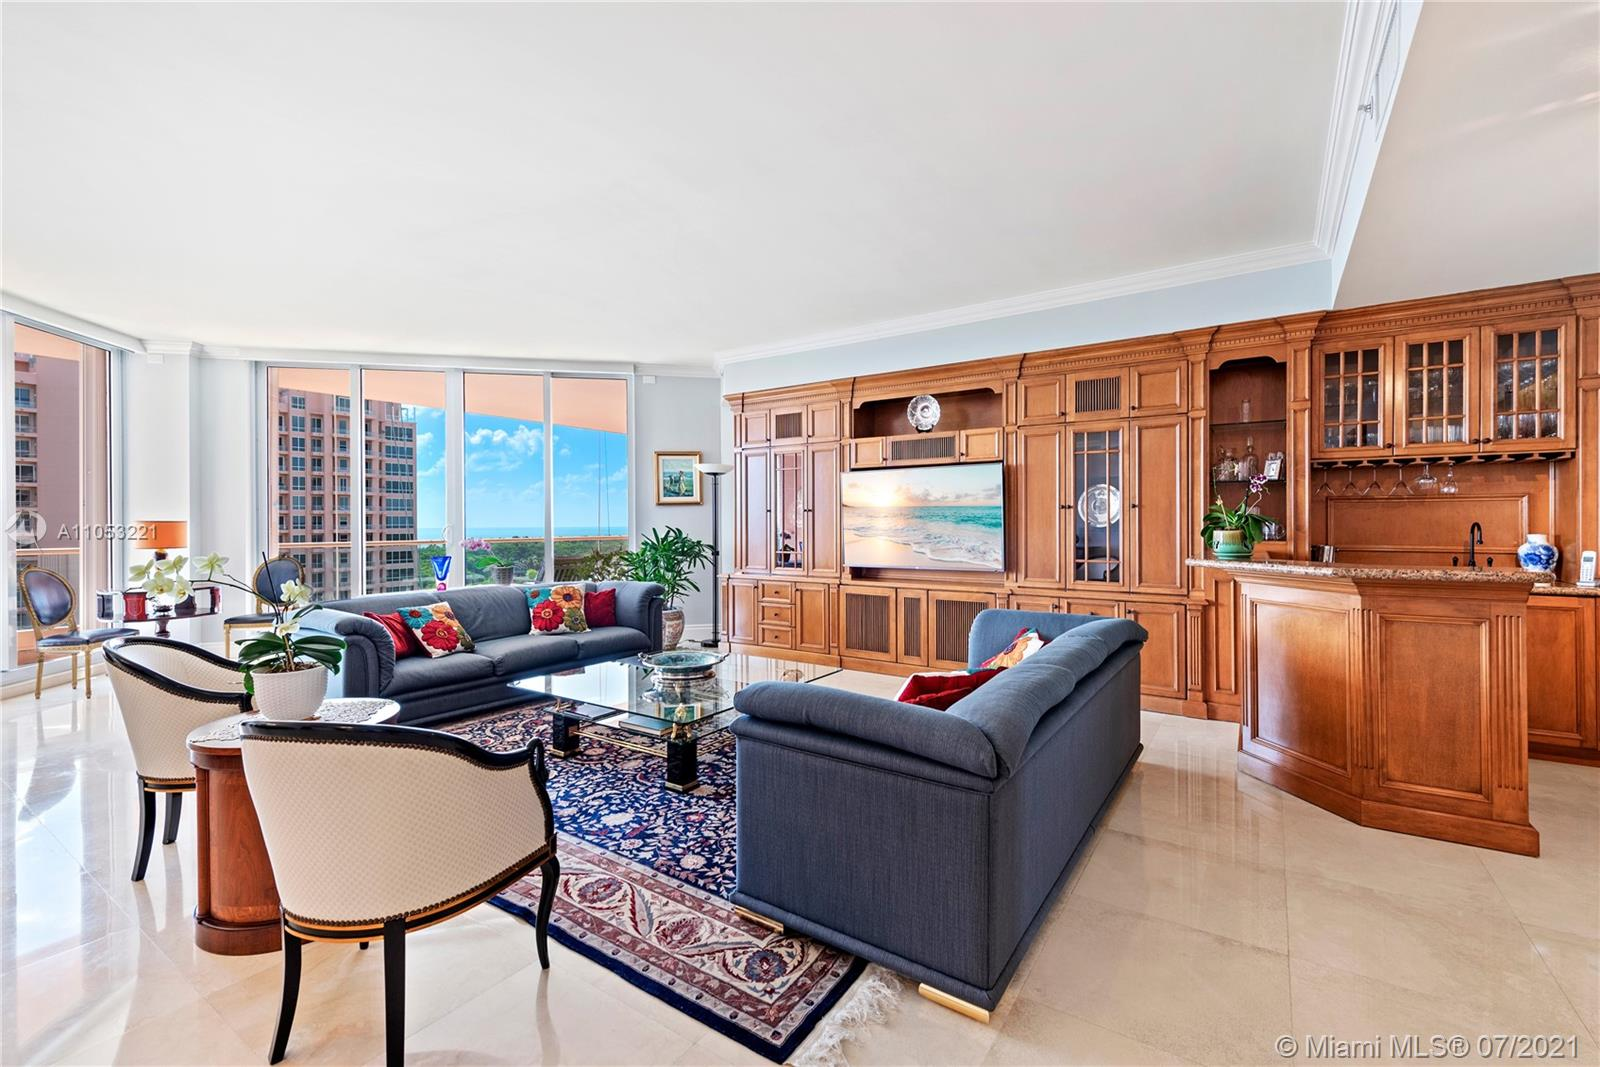 Large (3165 sft),high floor 3/3.5 condo in the prestigious Gables Club, a luxurious, waterfront, service focused condominium w/ beautiful grounds & 24/7 security. Stylish 11F was lovingly decorated with many upgrades by an owner designer. The perfect home replacement, feel like you are living in a single family home plus enjoy incredible views from each room of the eastern bay, city, and sunsets over Cocoplum and the Gables.  The unit has large glass sliding doors out to massive balconies on all sides. Enjoy resort-style amenities; spa, 2 pools, fitness center, salon, private restaurant & lounge, tennis courts and putting green. 11F comes w/ 2 covered parking spots, electric vehicle charger, and air-conditioned storage. Furniture is available for sale. Kindly schedule a private showing.